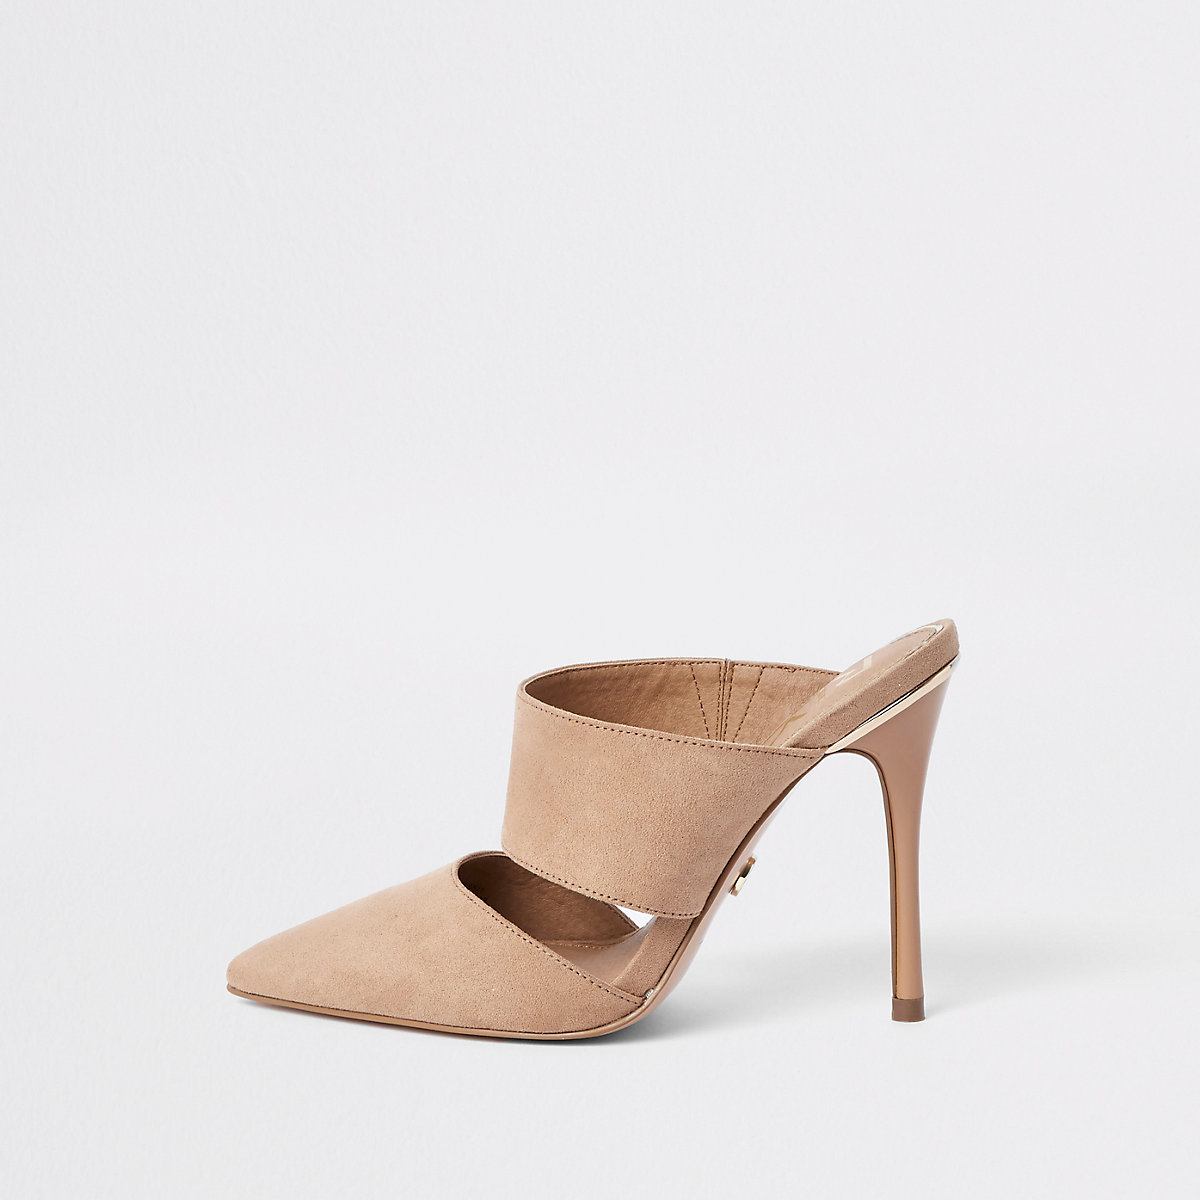 Pink pointed toe stiletto mules